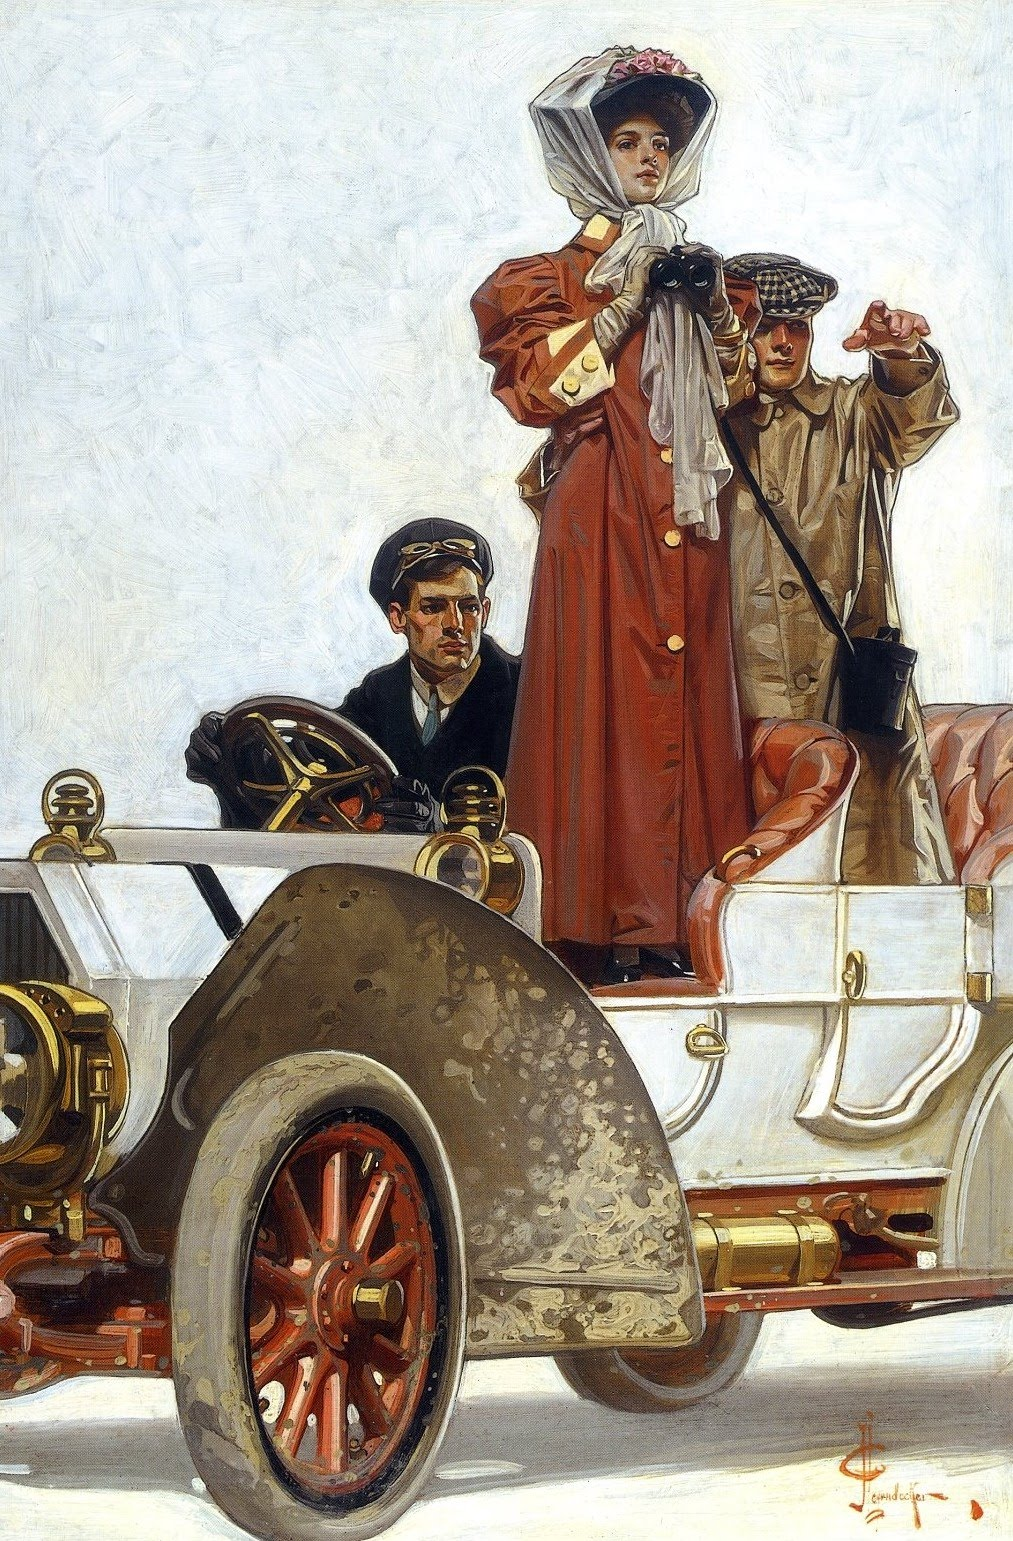 Painting by  J. C. Leyendecker of a chauffeur escorting a lady around.